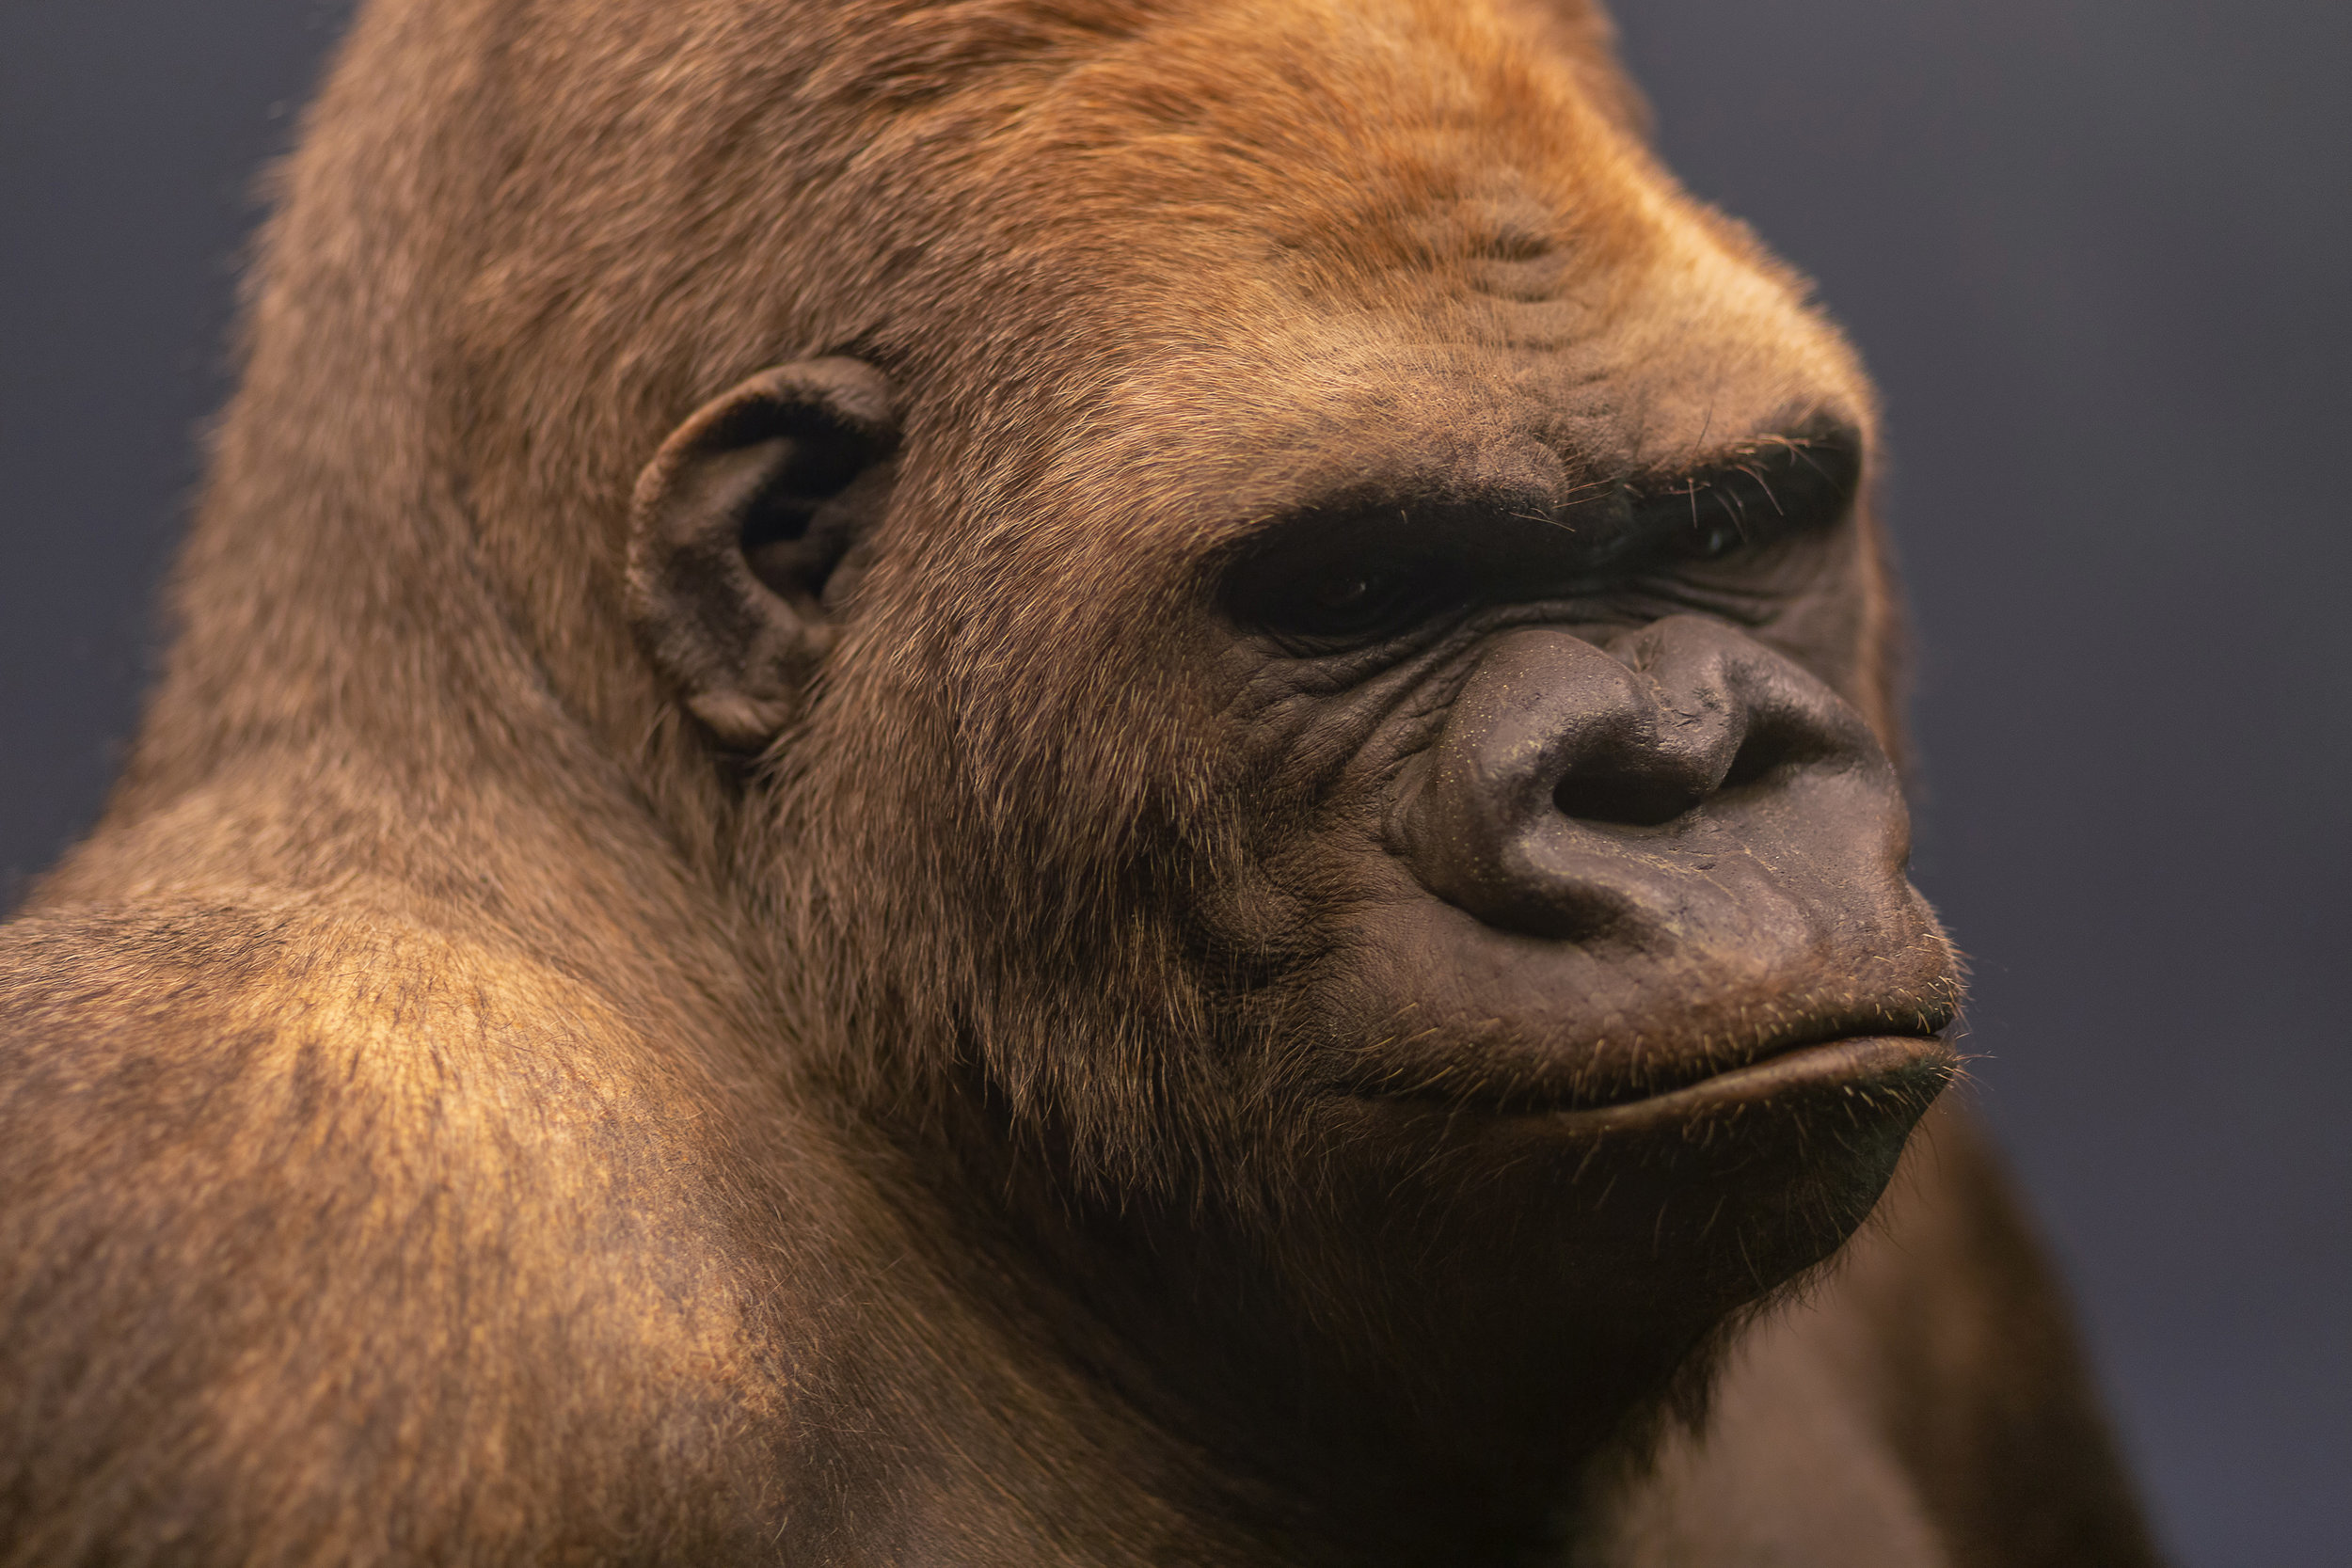 Portrait of Bobby, a famous gorilla who was a resident of the Berlin Zoo until 1935, displayed at the Naturkundemuseum, Berlin.